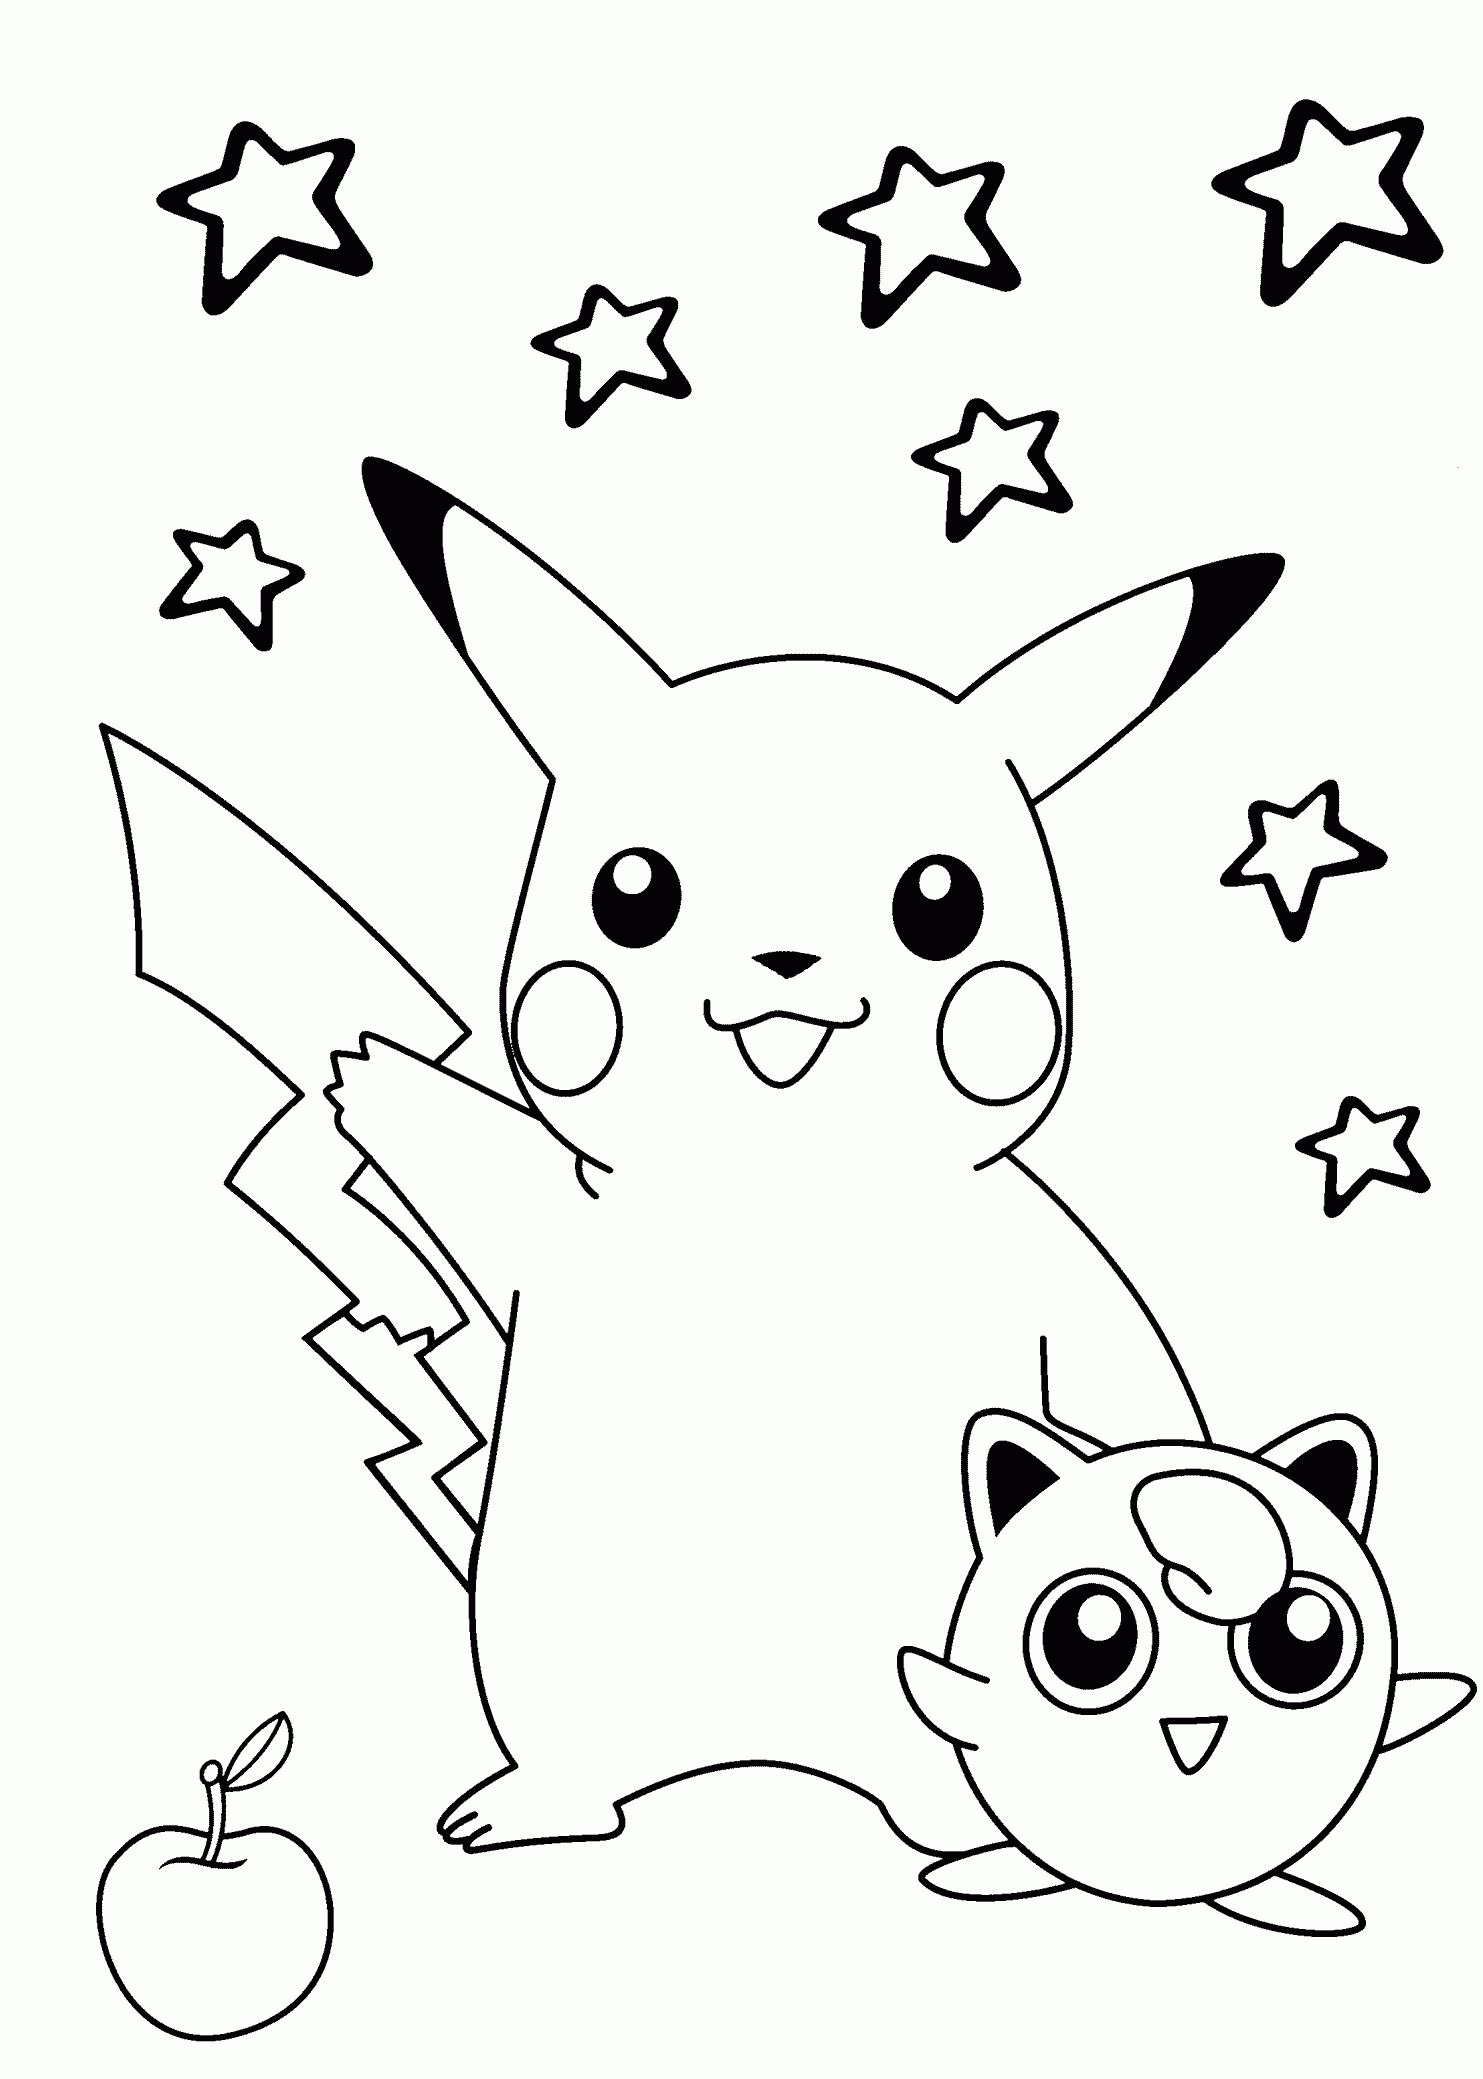 Pokemon Coloring Pages Printable Pikachu Coloring Page Pokemon Coloring Pages Animal Coloring Pages